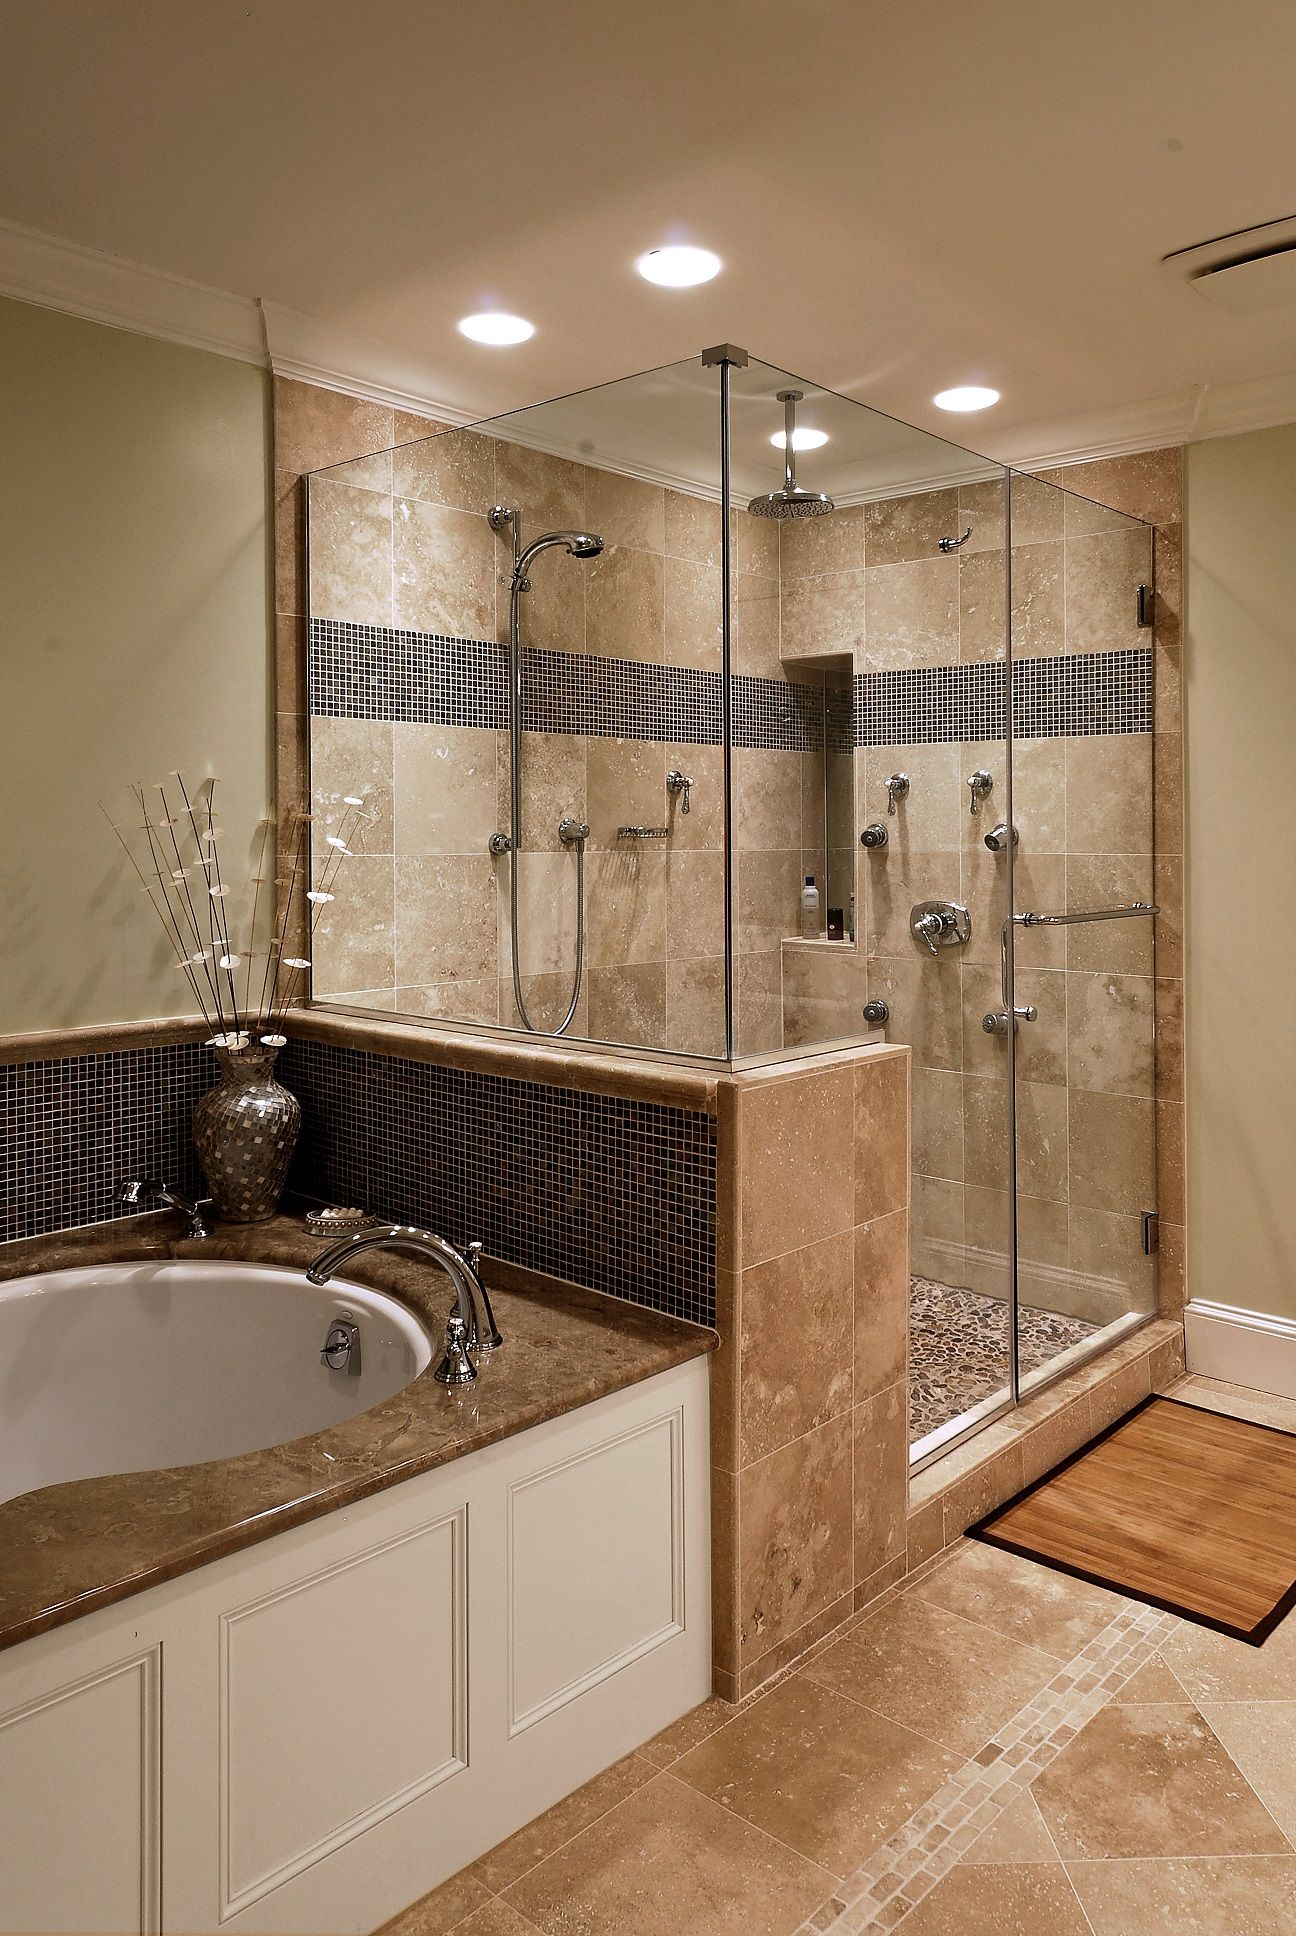 Contractor For Bathroom Remodel Impressive Inspiration